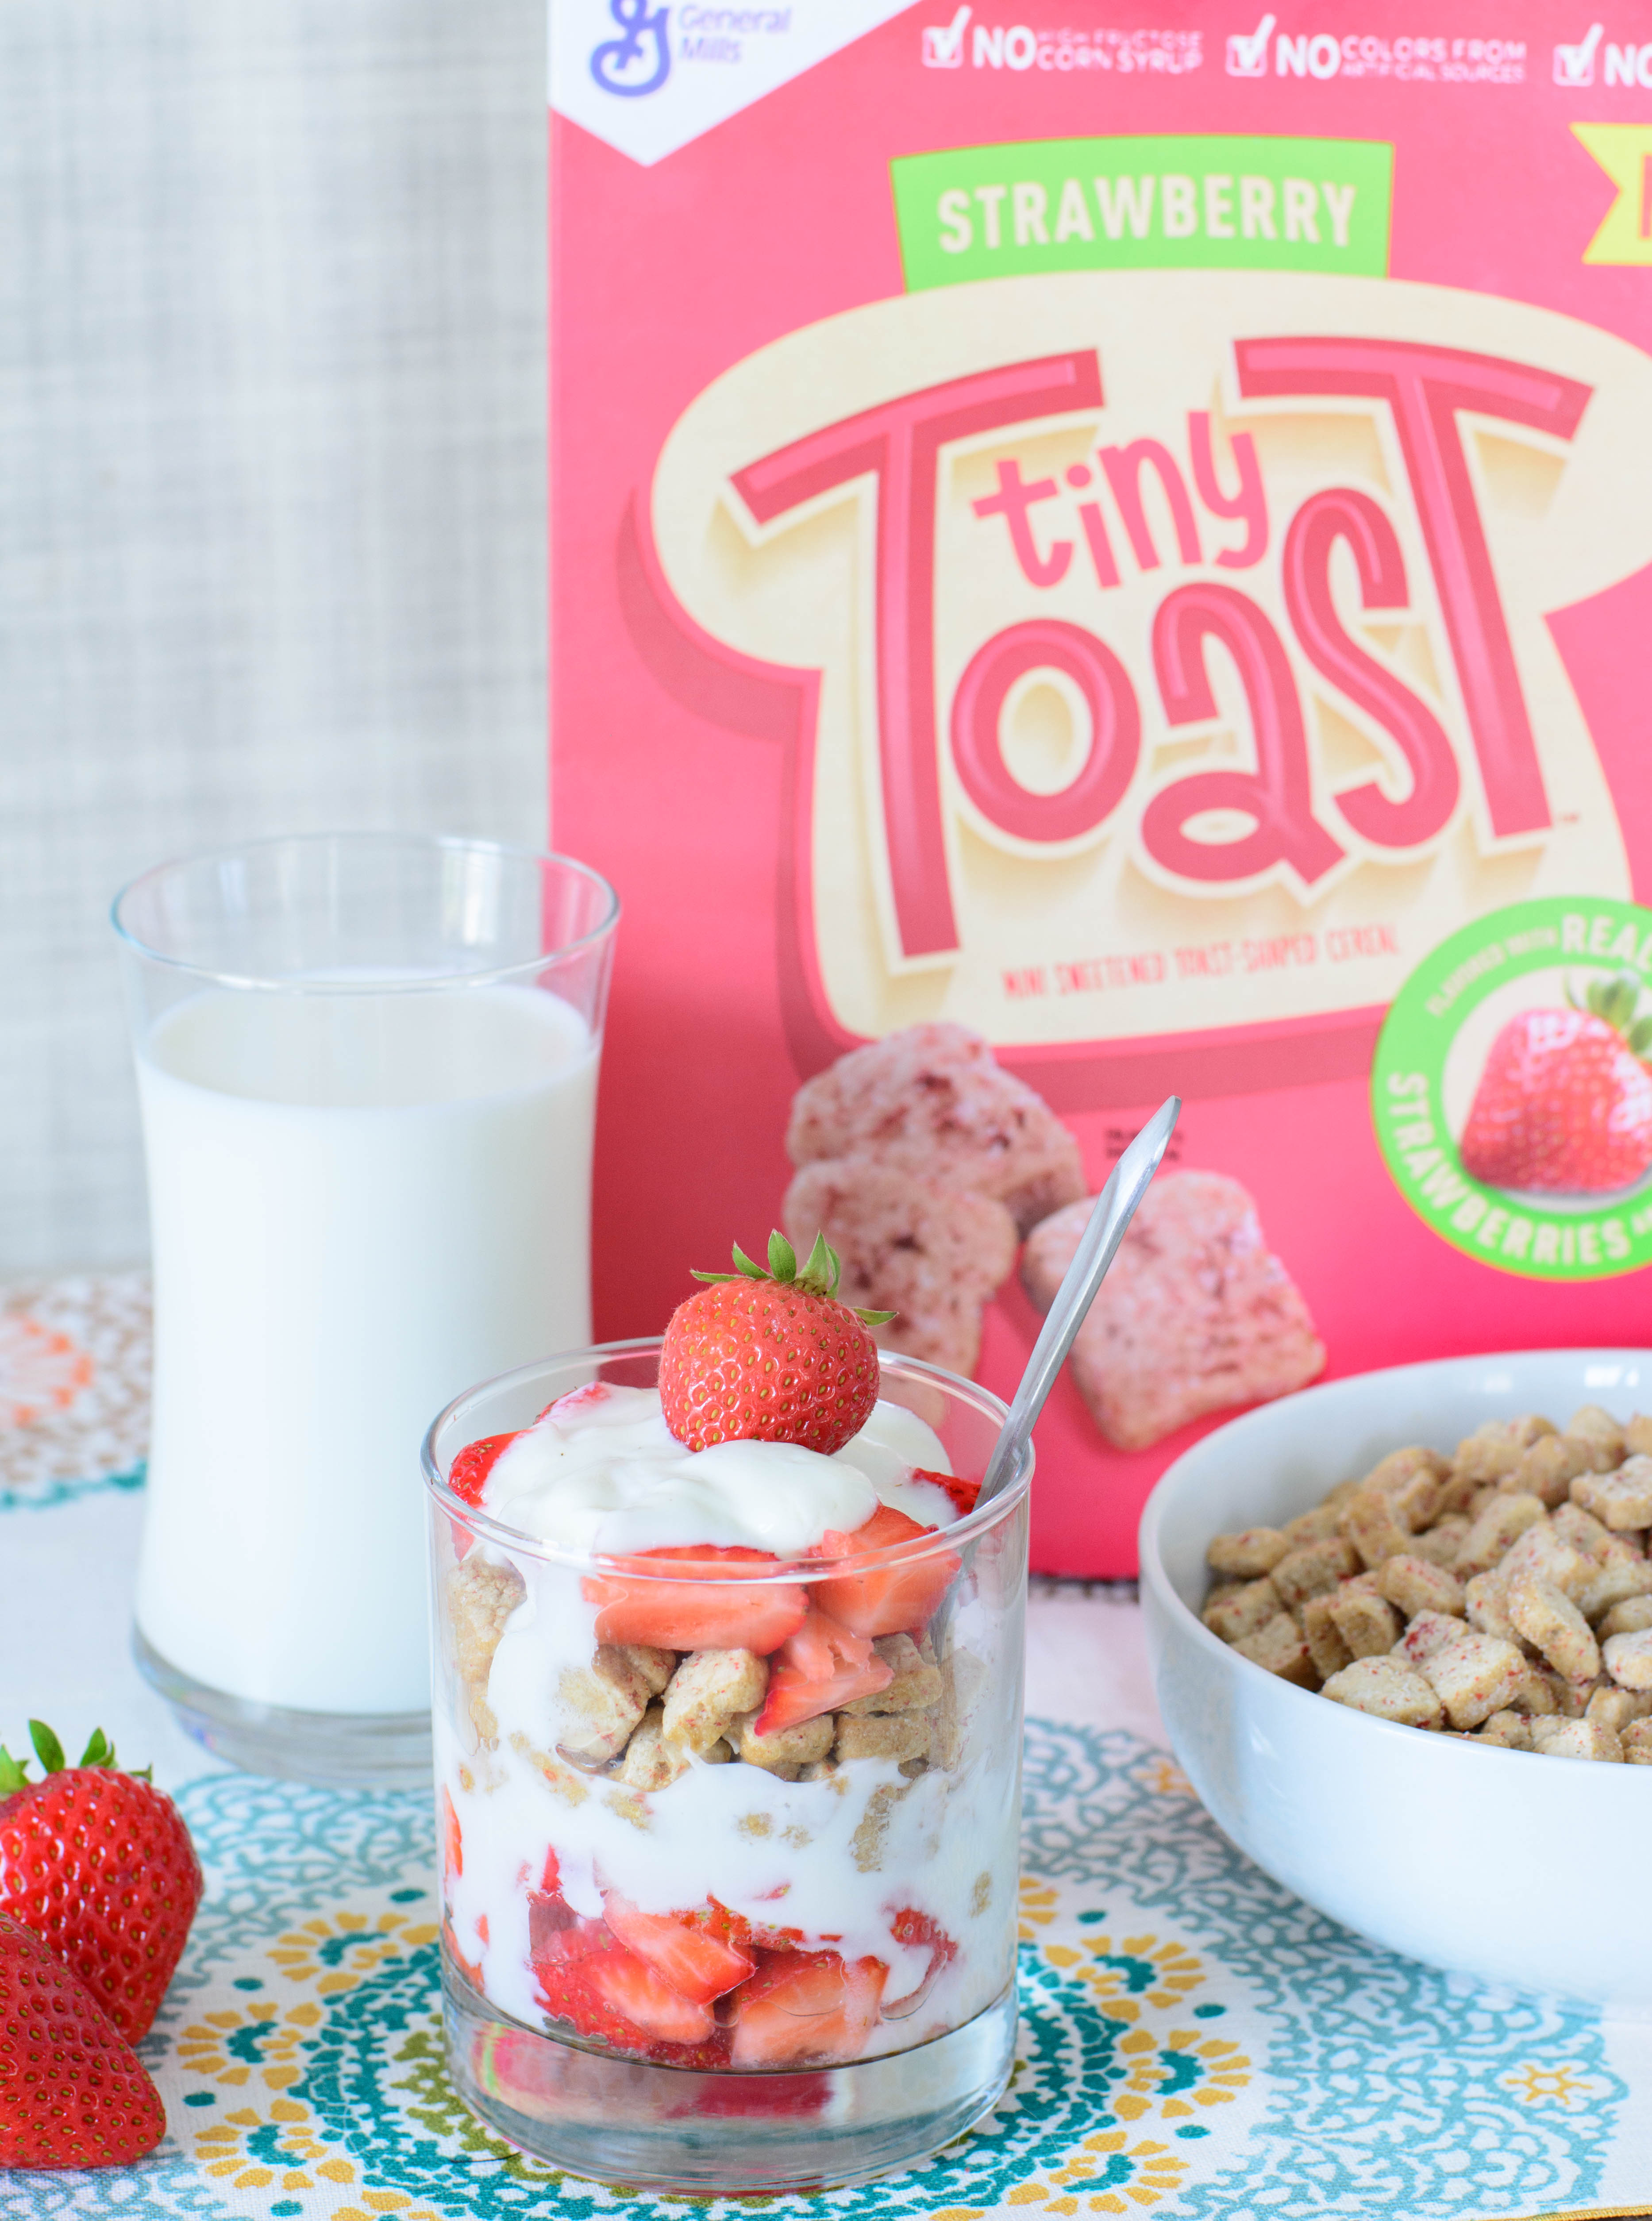 These delicious fruit, yogurt and cereal parfaits make a healthy breakfast or snack and are easy for kids to make themselves. Yum!!